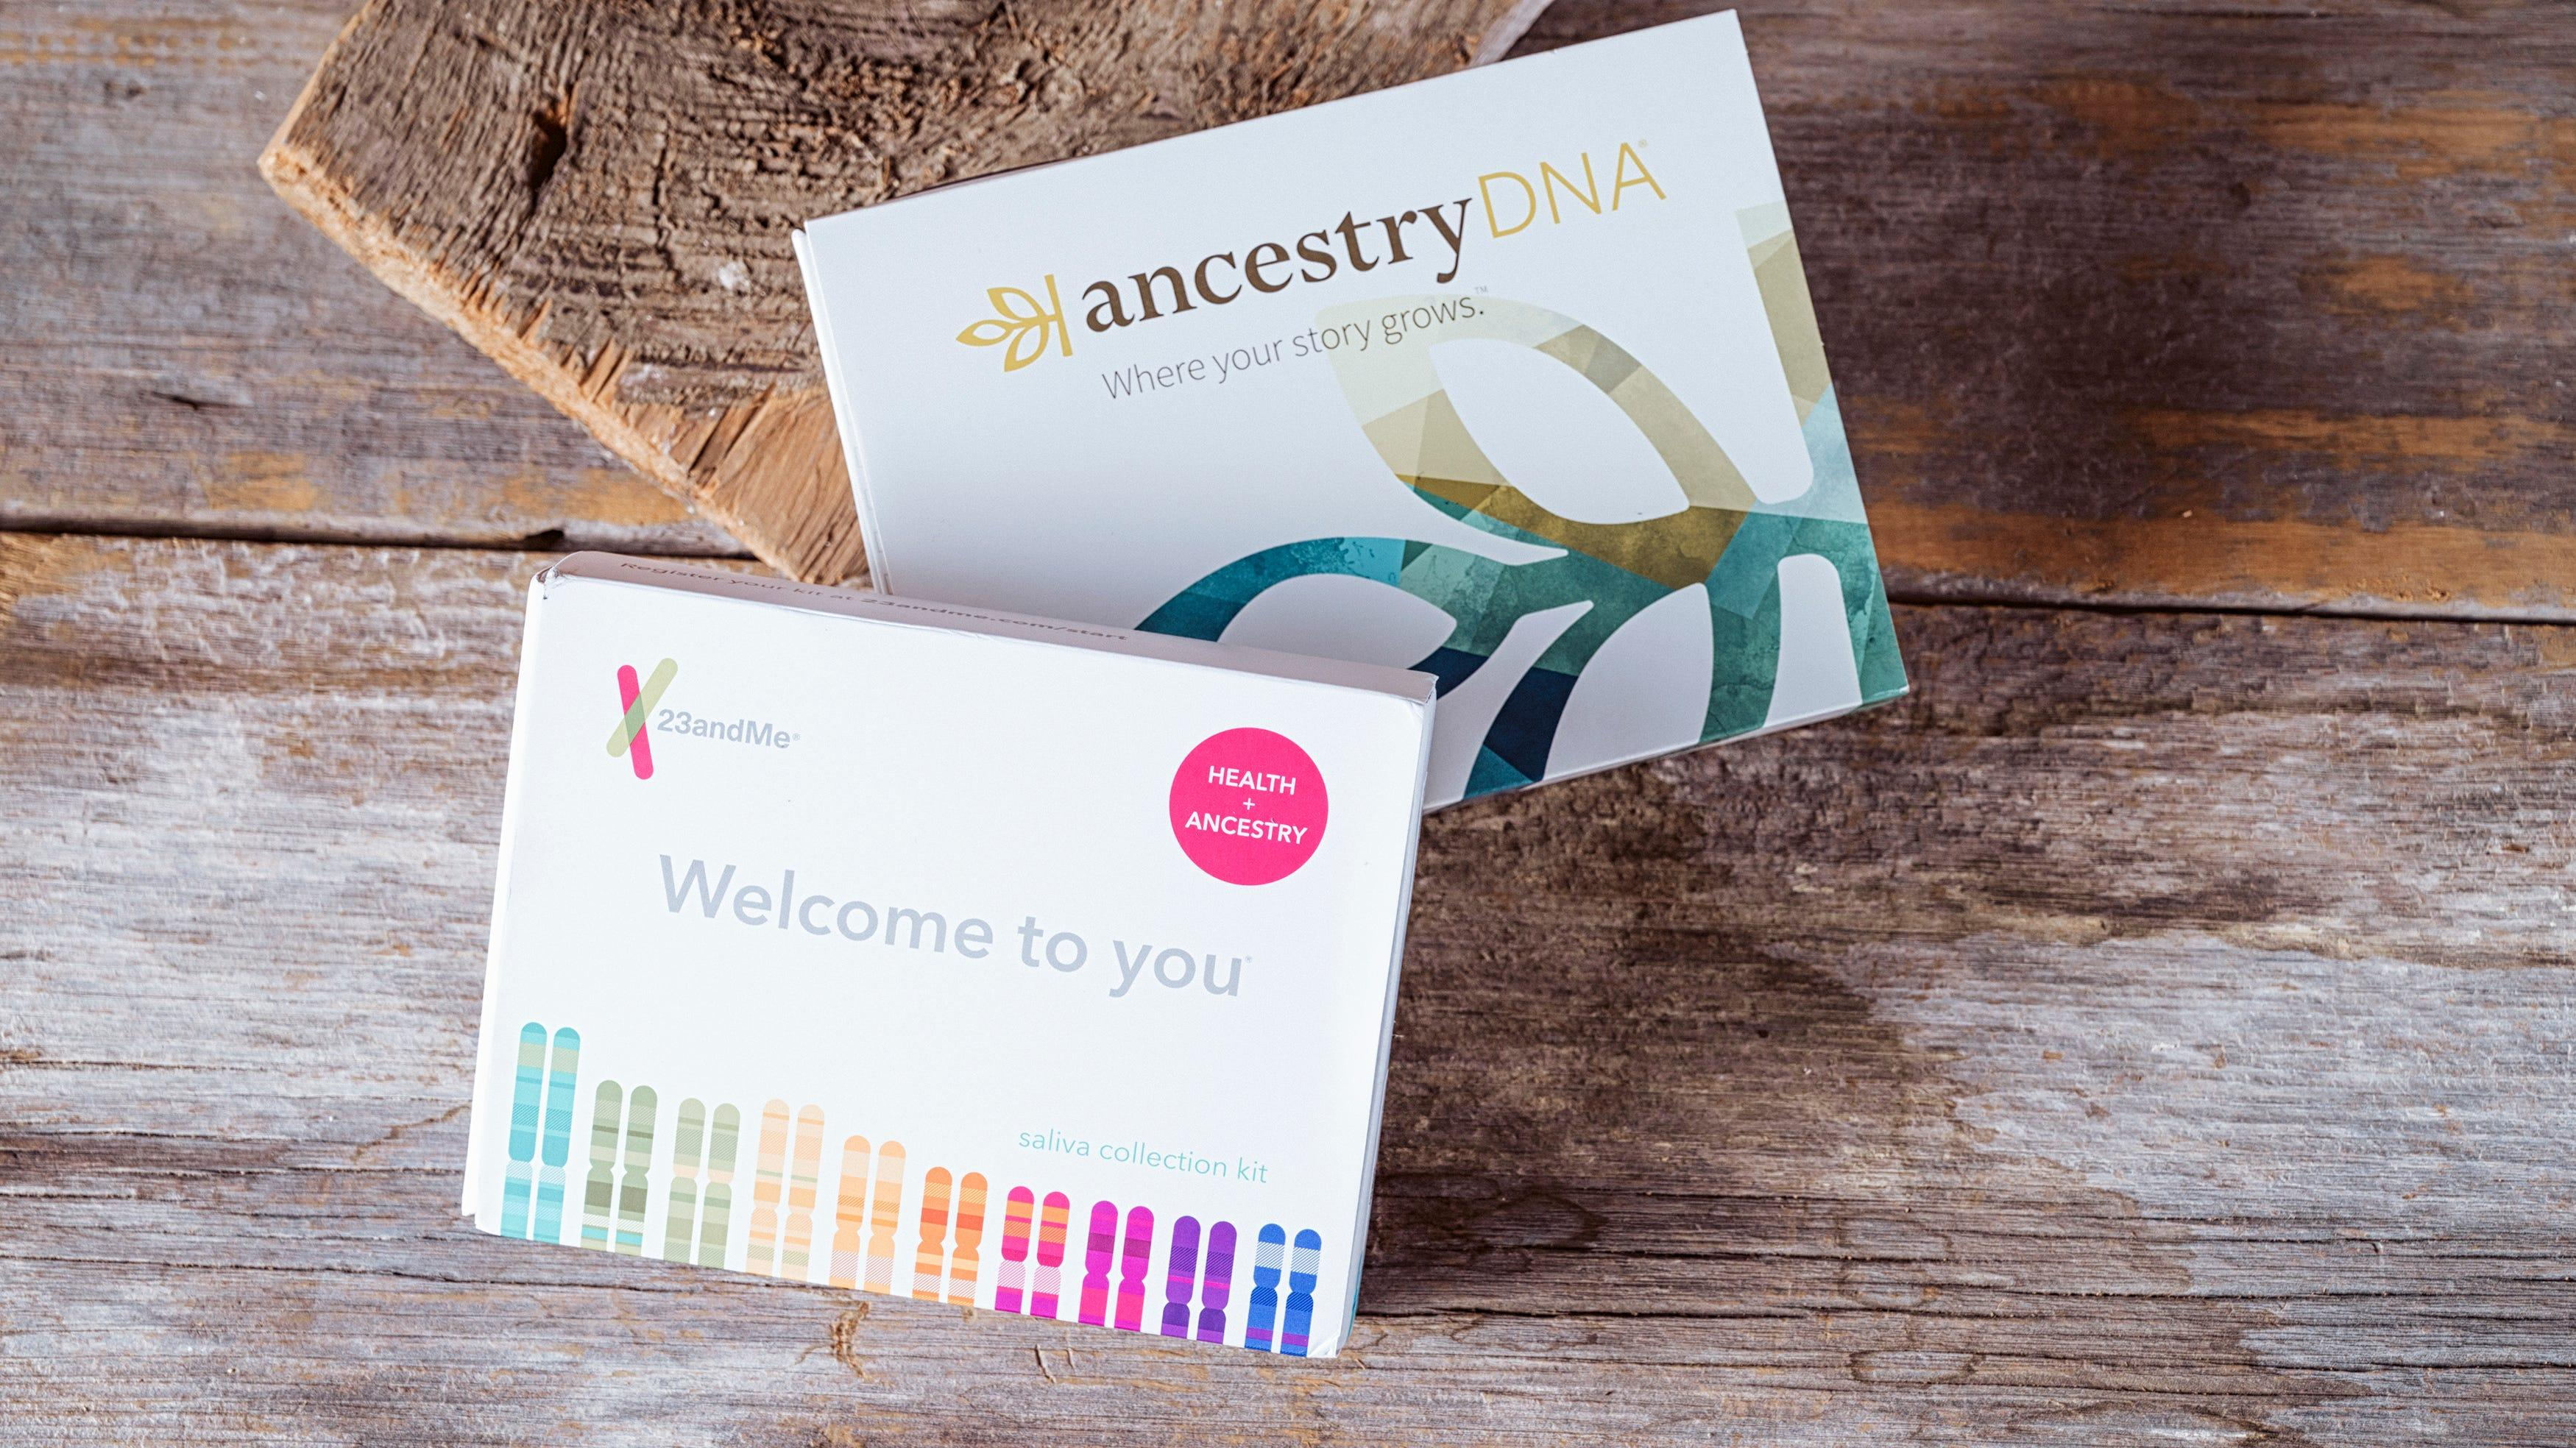 Armed with massive data pools, genealogy companies Ancestry, 23andMe begin COVID-19 research